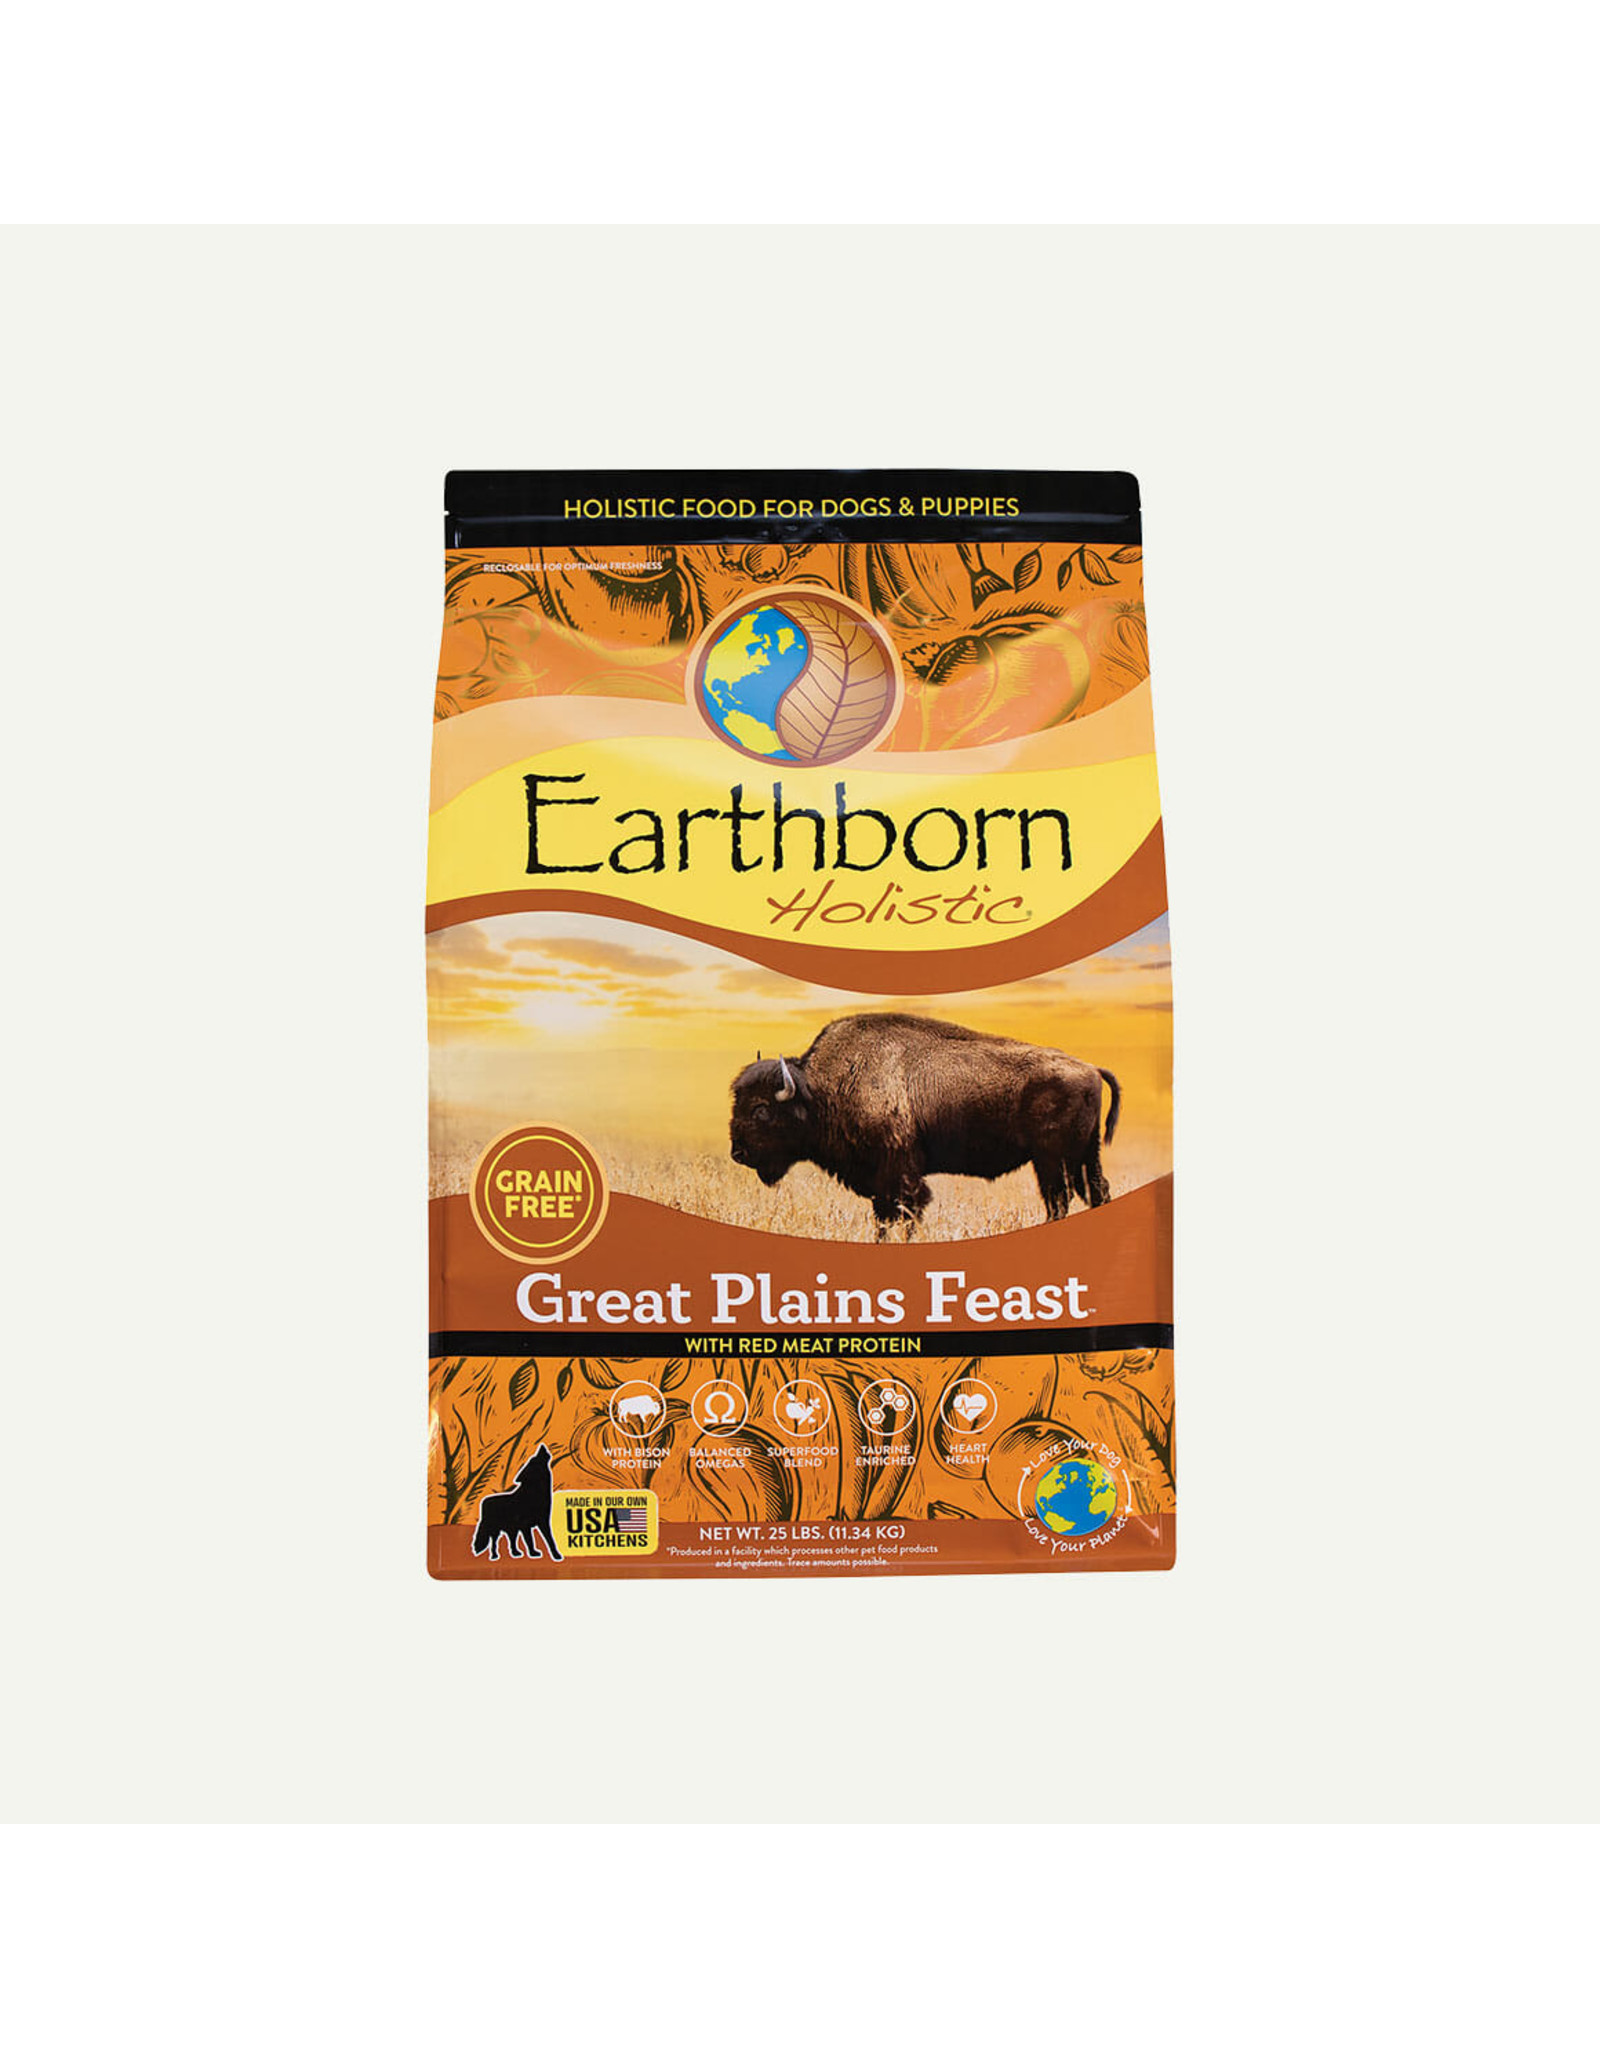 Earthborn Earthborn Holistic Dry Dog Food Great Plains Feast with Red Meat ProteinGrain Free